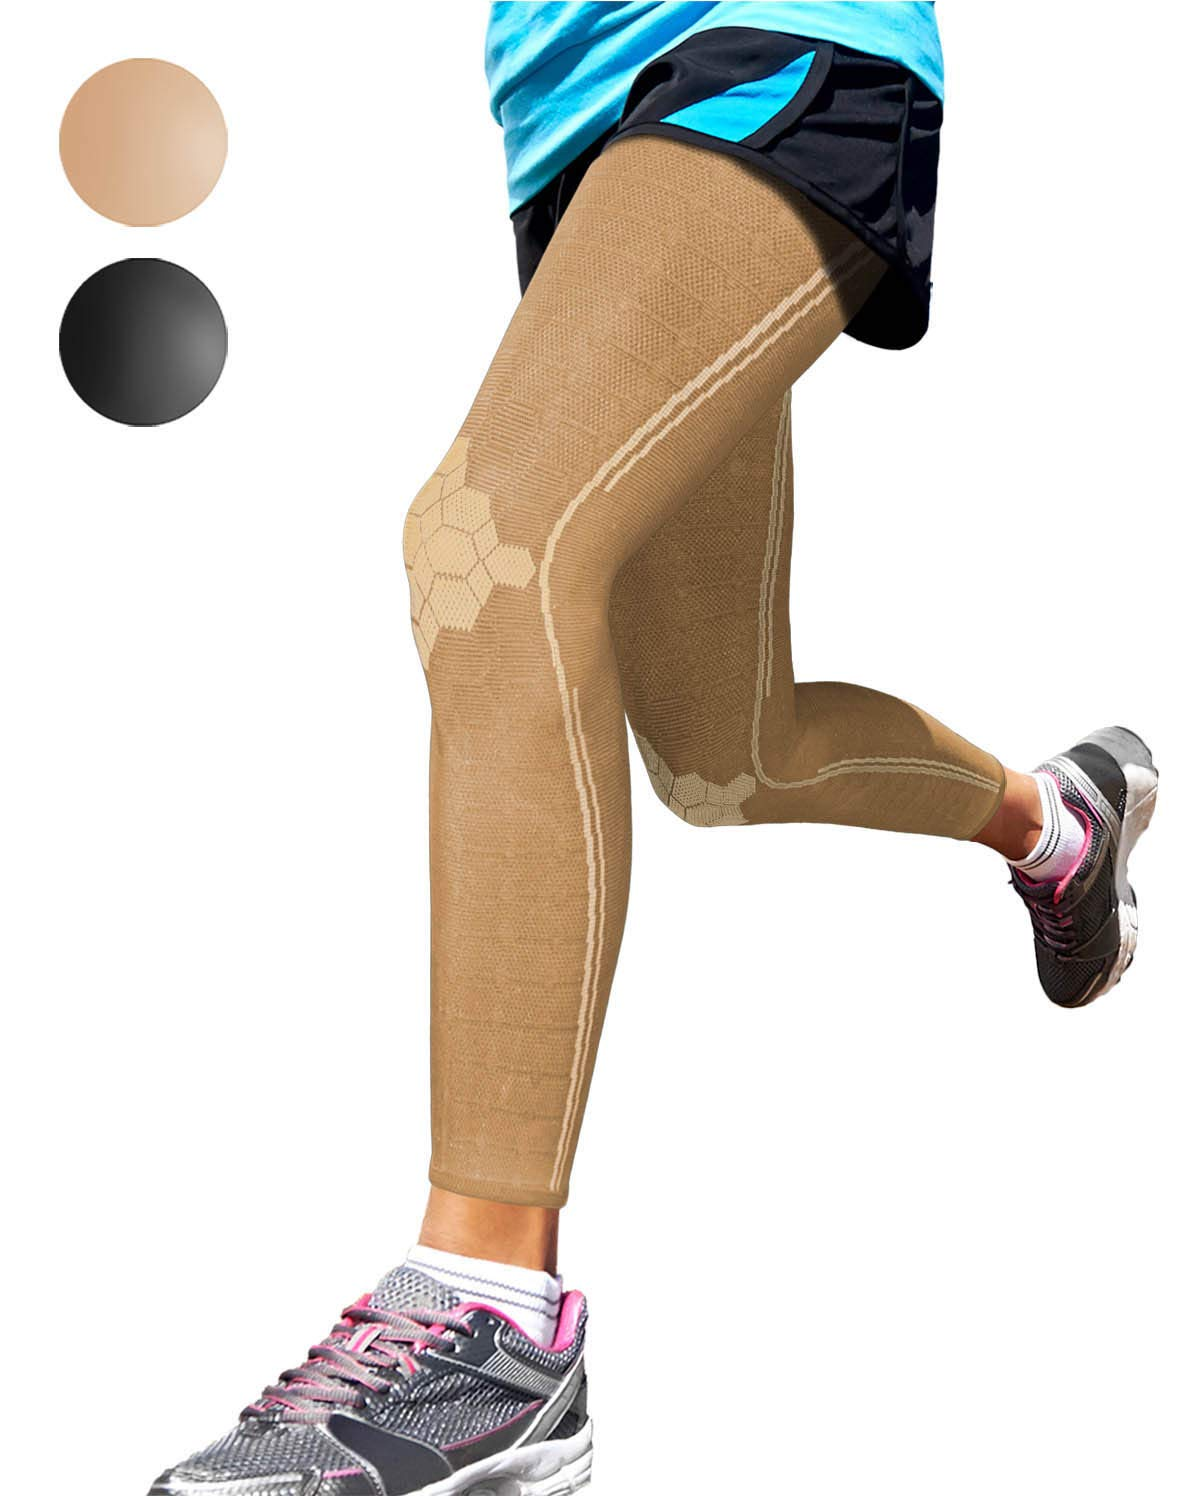 Sparthos Leg Compression Sleeves - Braces for Calves Knees and Thigh Recovery, Support for Athletic Sports Running Runner Stockings Leggings Stabilizer Wrap - Anti Slip - for Men and Women (Beige-M) by Sparthos